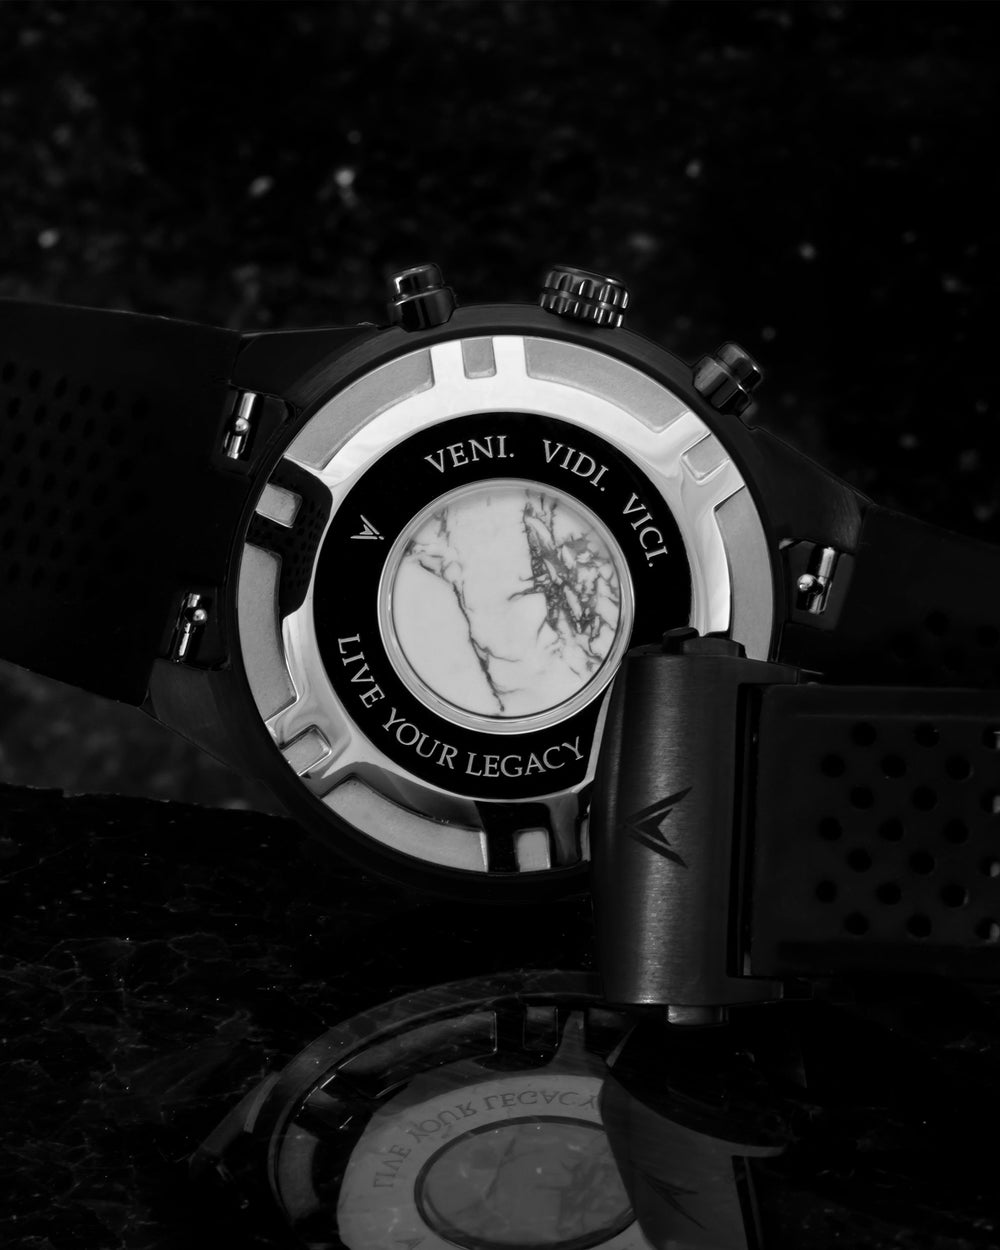 Rogue Italian Marble and 316L Stainless Steel Caseback with Veni Vidi Vici Live Your Legacy Engraving